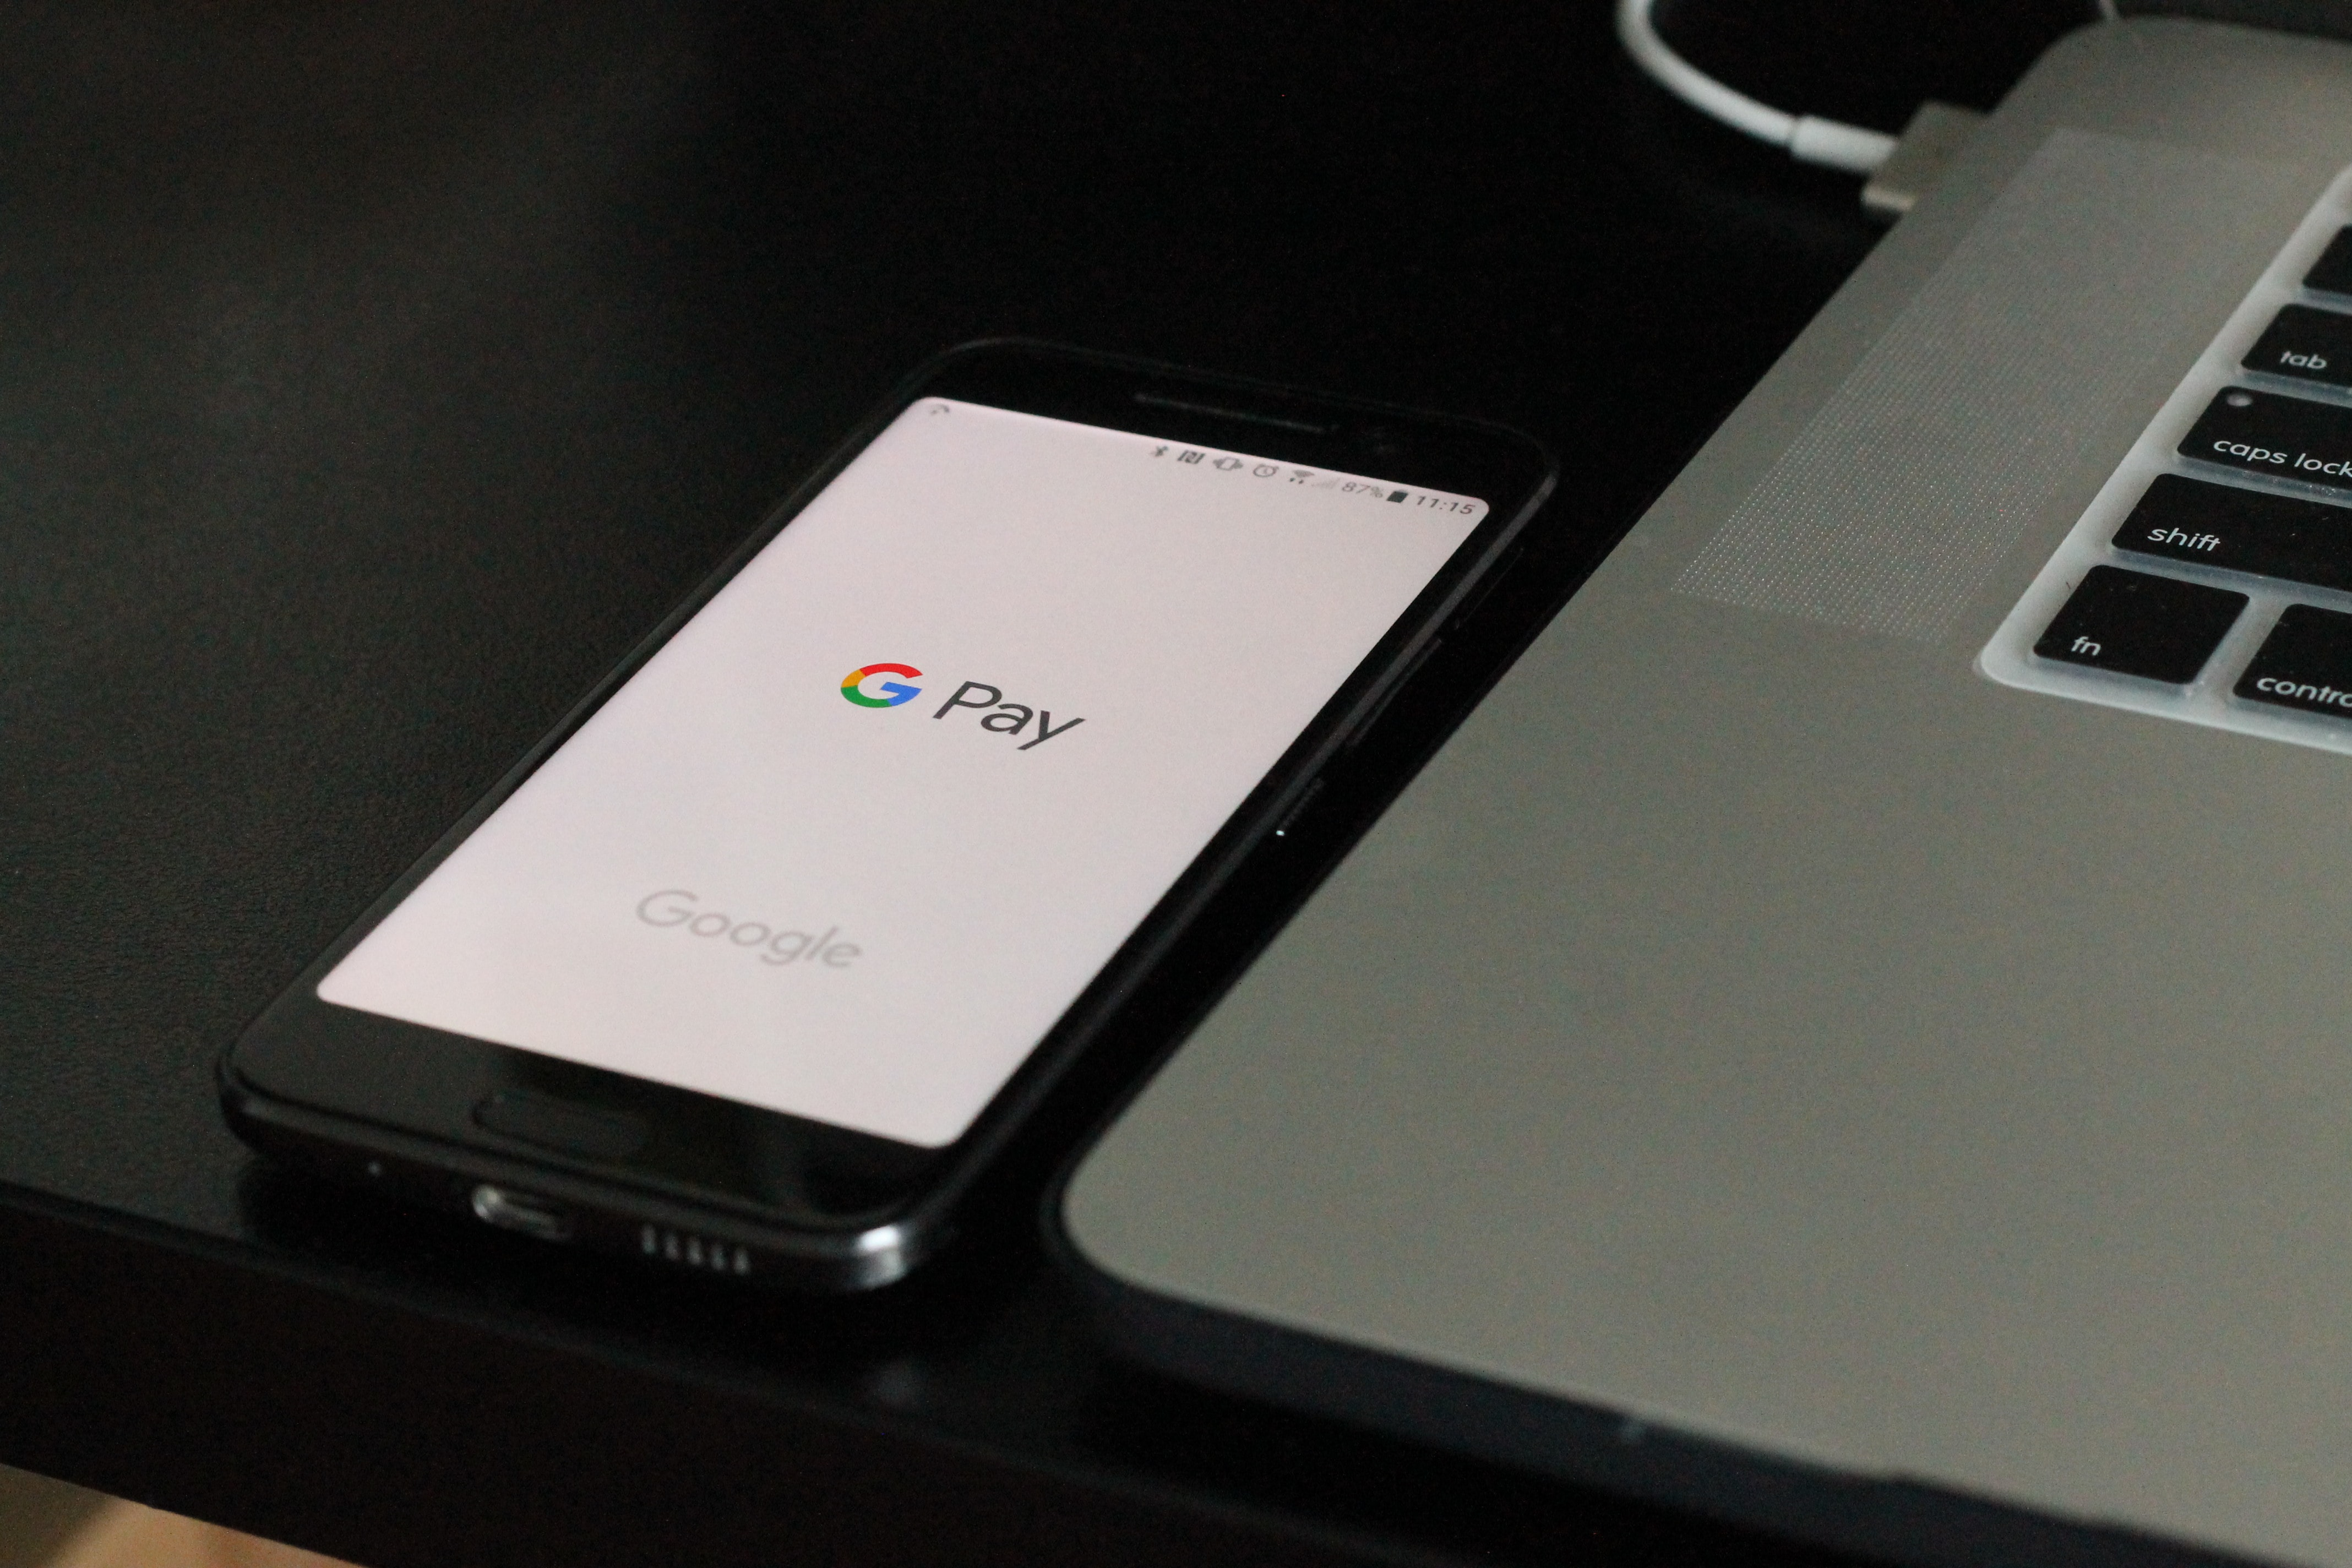 NFC Payment technology powers mobile wallets